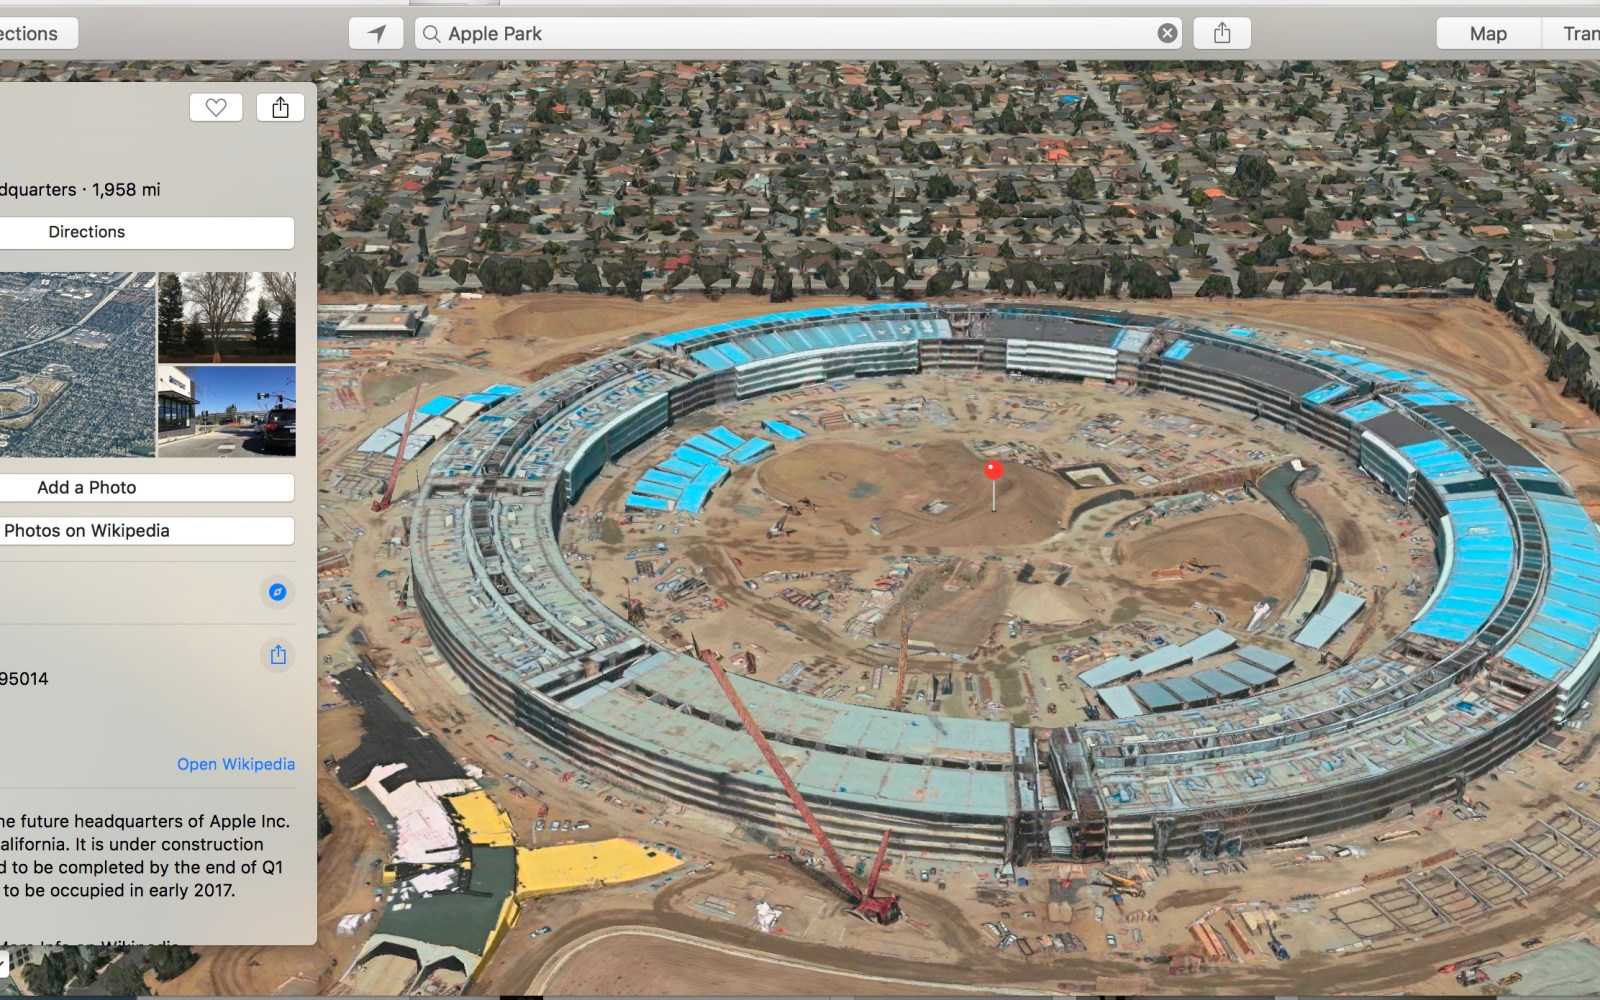 Apple Maps updated with proper Apple Park details and satellite imagery [Gallery]